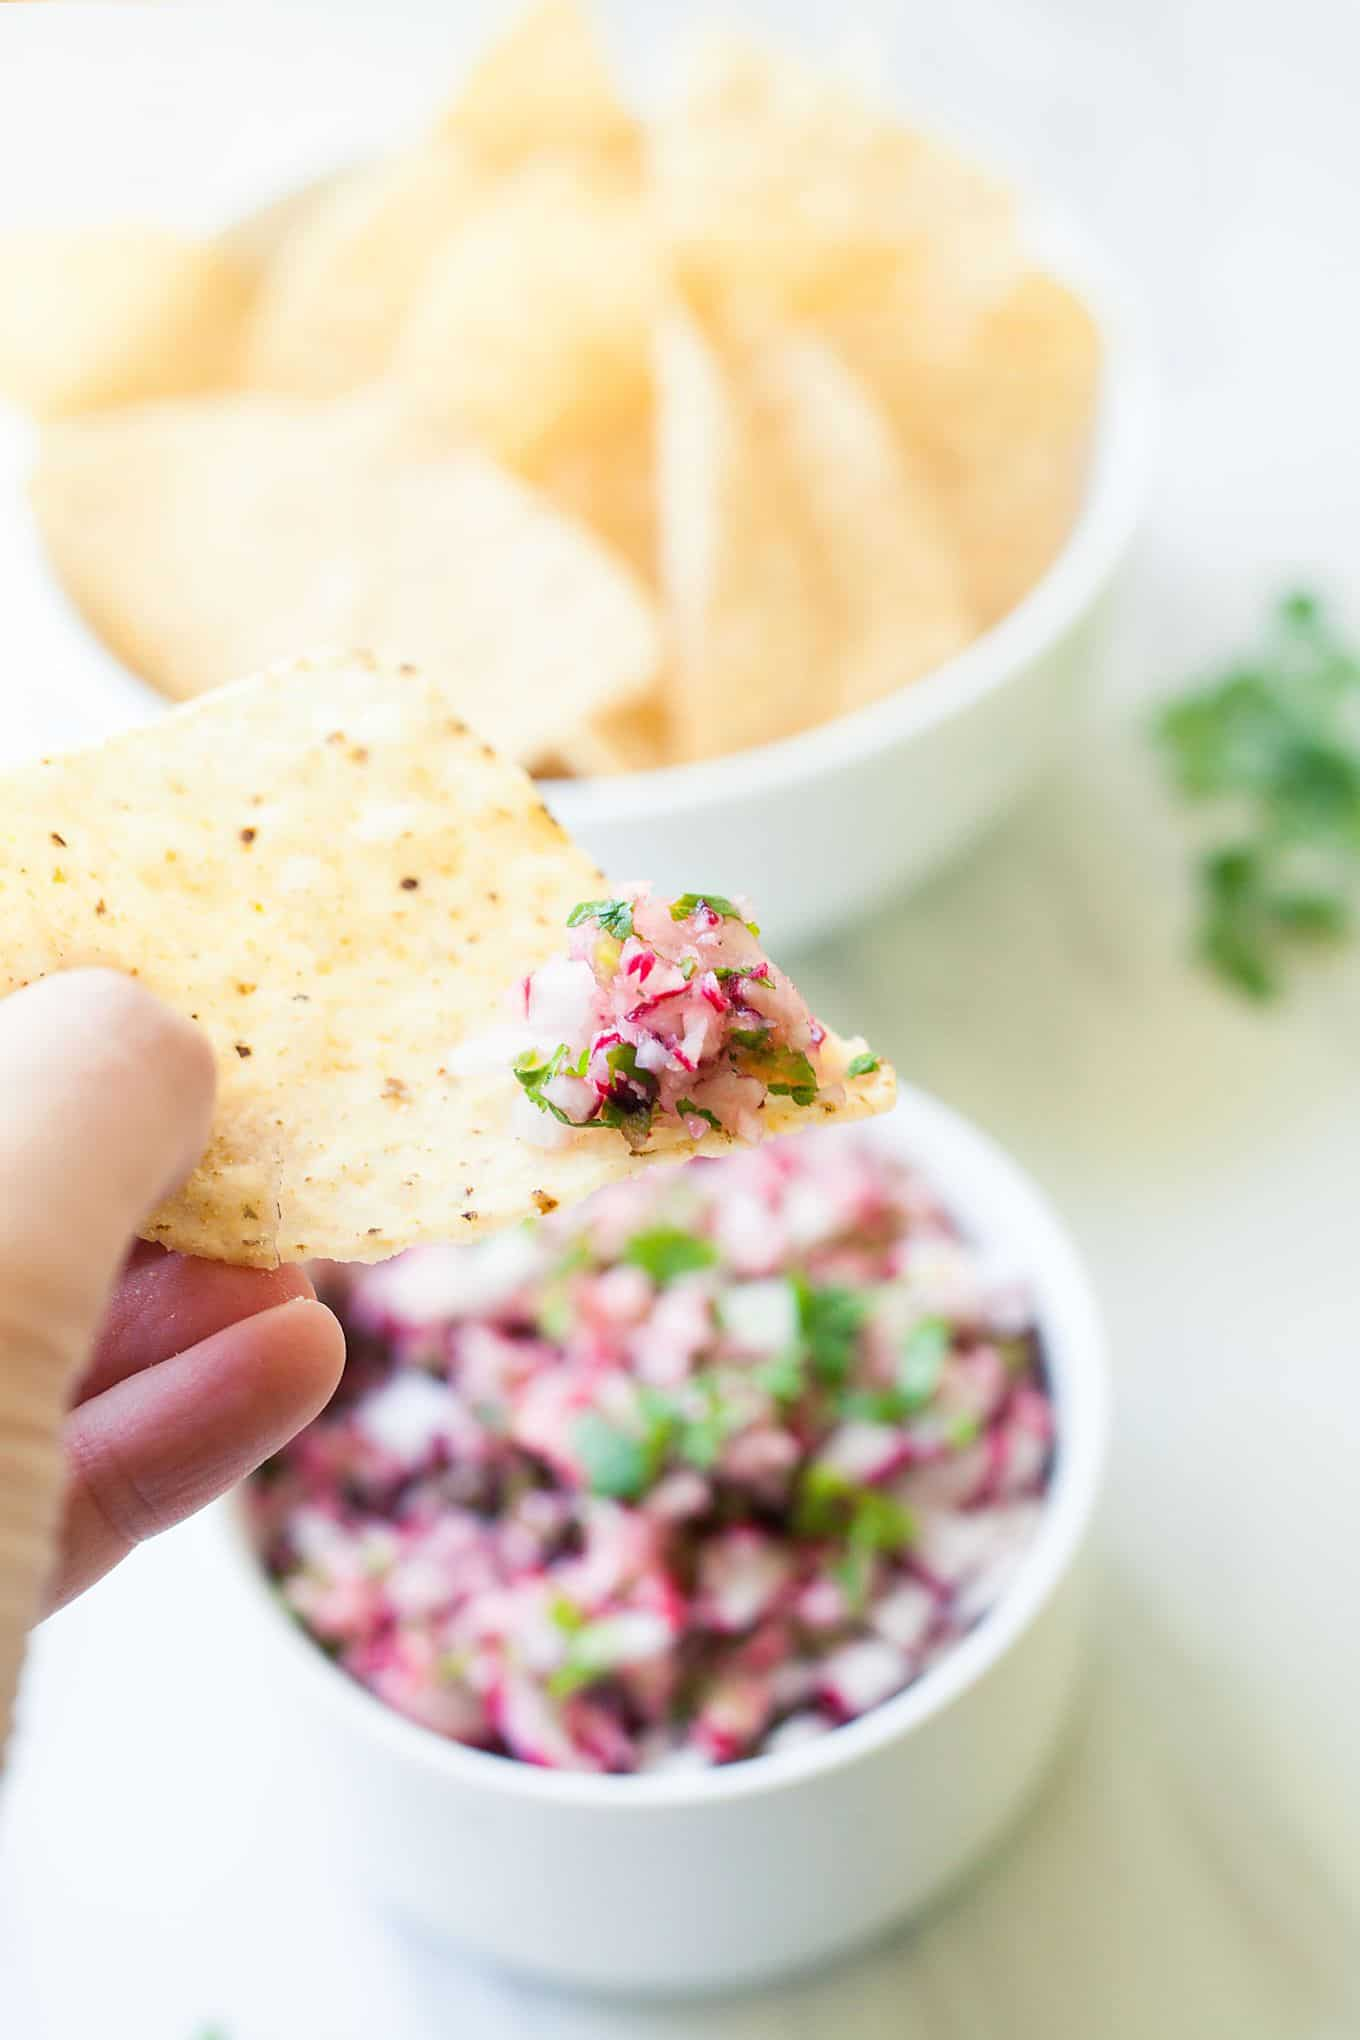 a hand grabbing some radish salsa on a tortilla chip